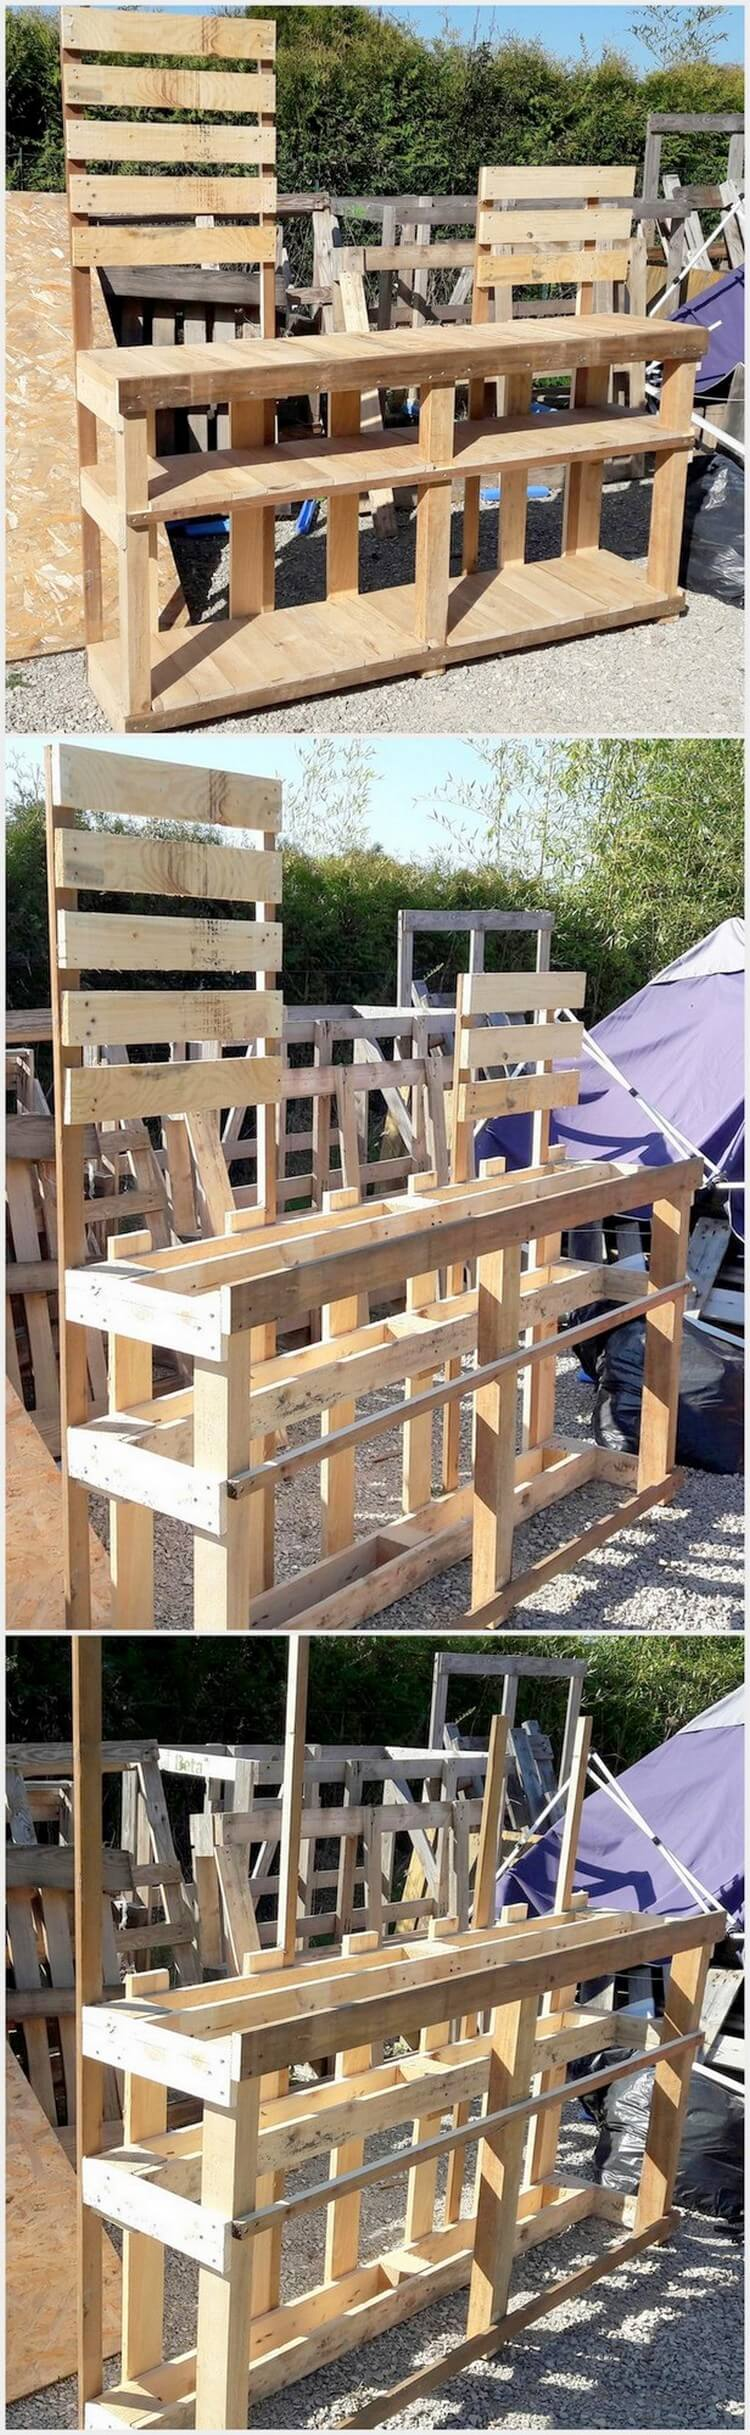 Paletten Jonny Möbel Aus Europaletten Easy And Inexpensive Projects For Wooden Pallet Reusing